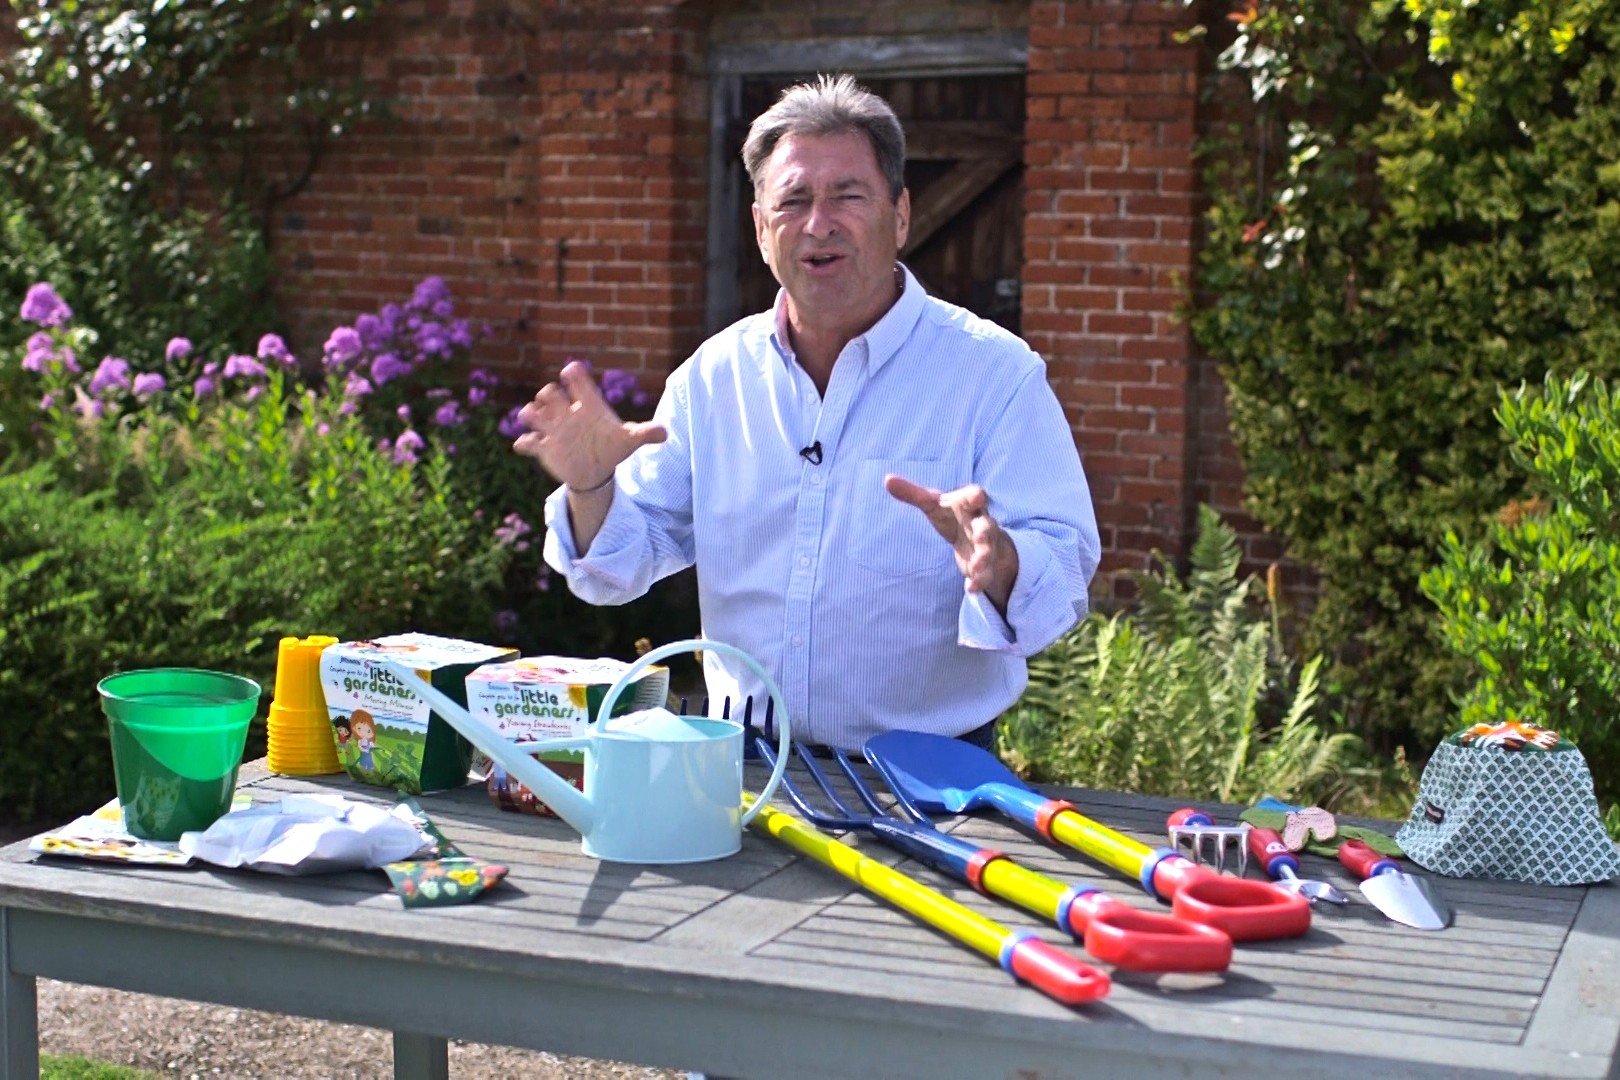 No Fuss Guide Kit for gardening with children